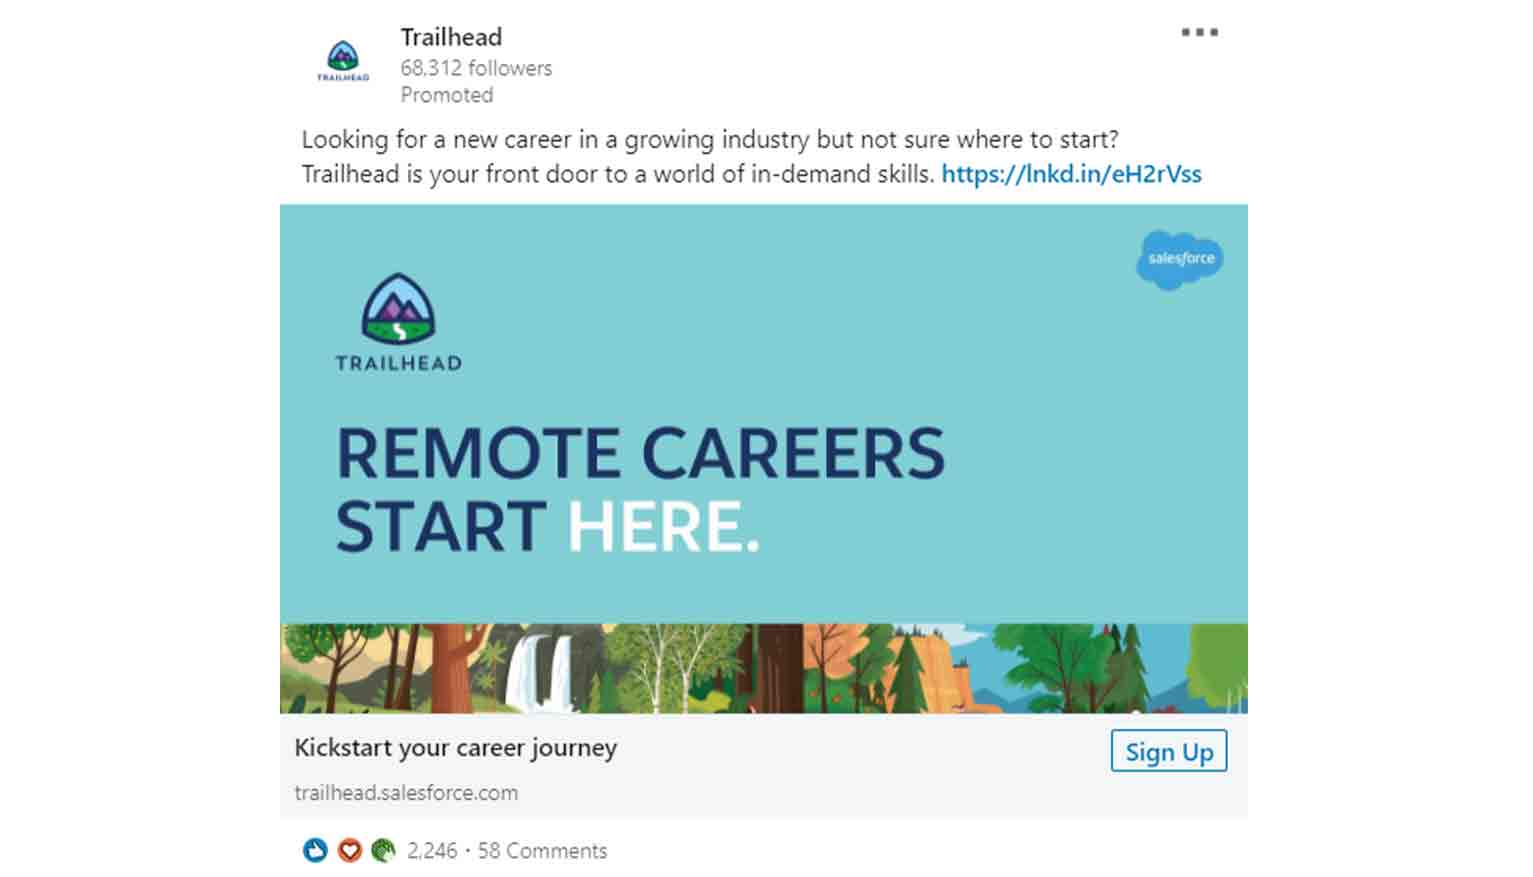 Take a look at the following LinkedIn ad inviting people to kick-start their career journey through the Salesforce Trailhead platform.